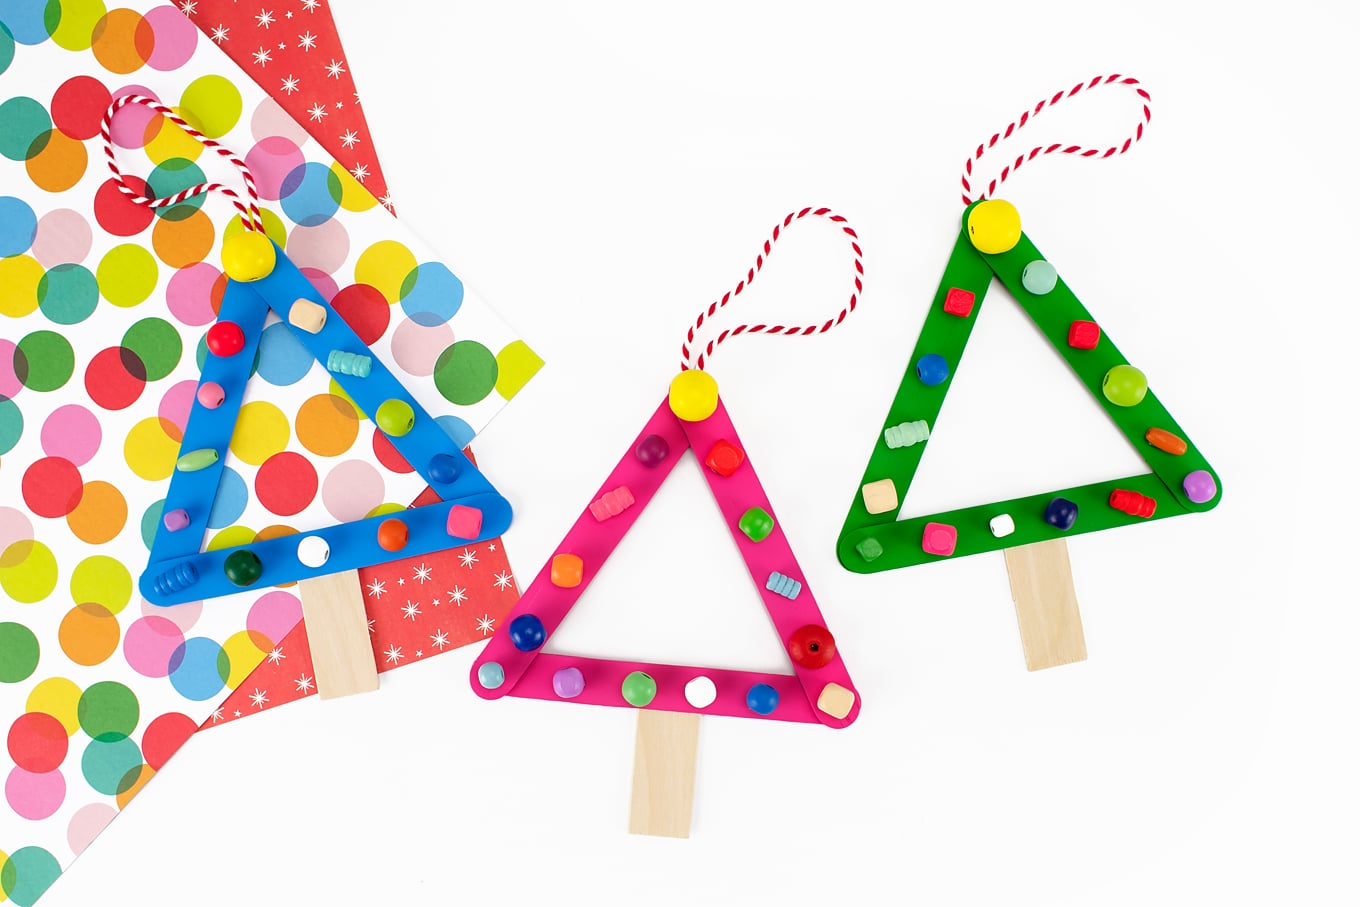 Blue, Pink, and Green Popsicle Stick Christmas Trees